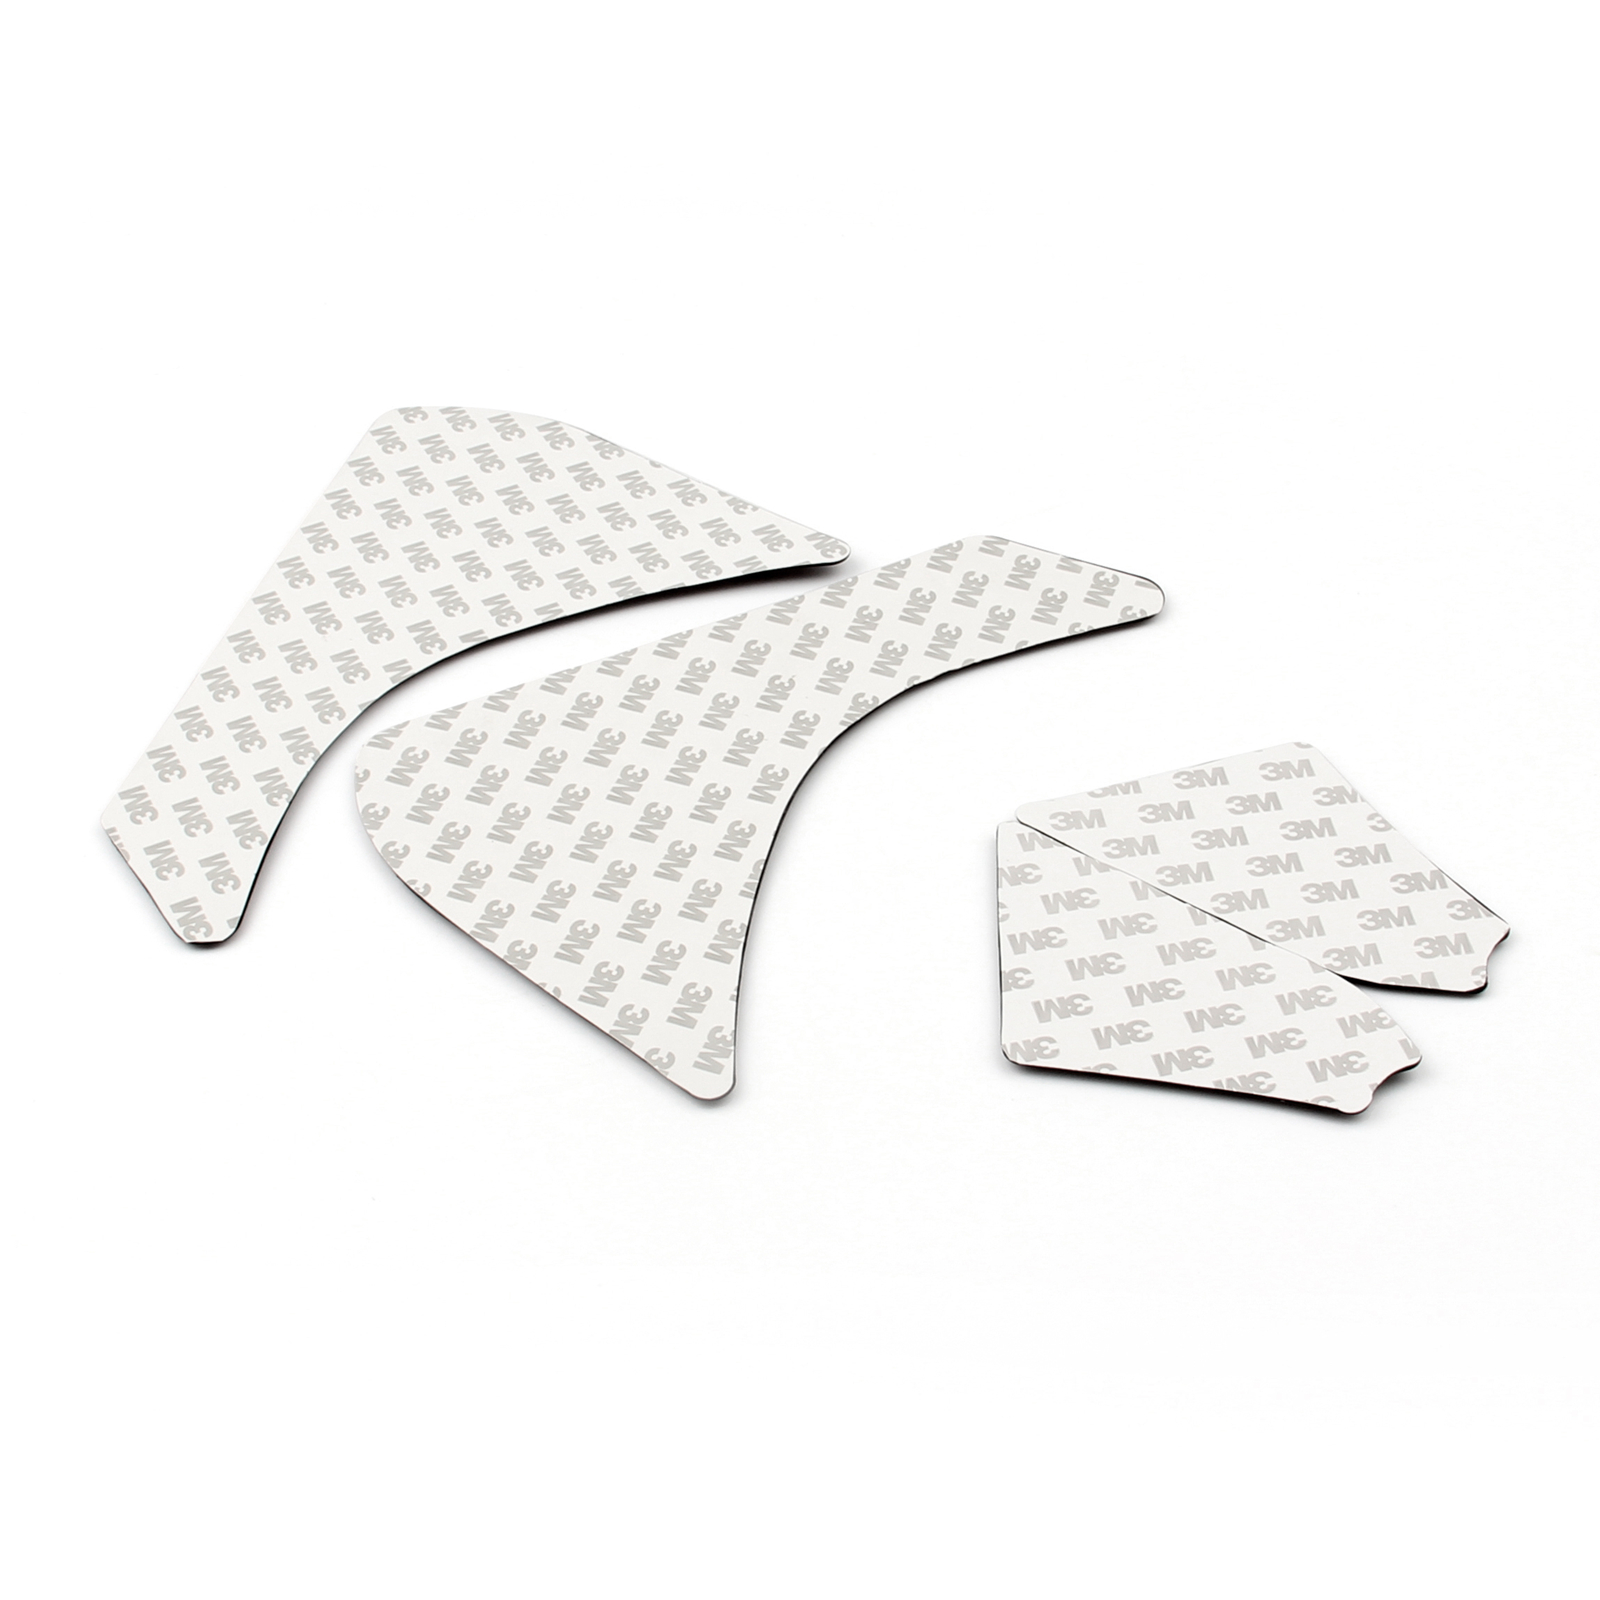 4PCS Tank Traction Pad left and right side protector for